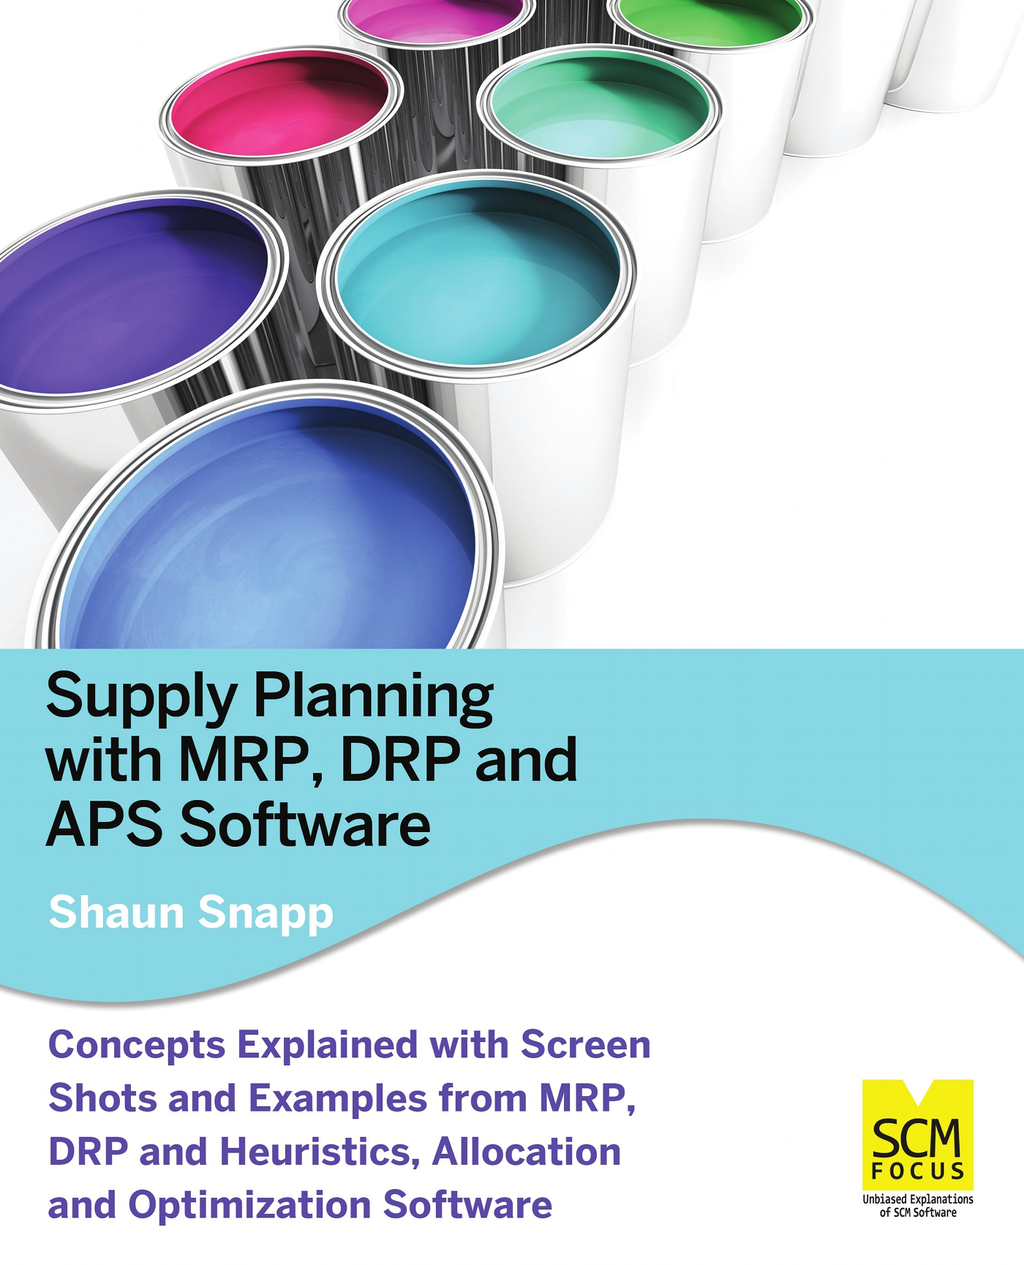 Supply Planning with MRP/DRP and APS Software